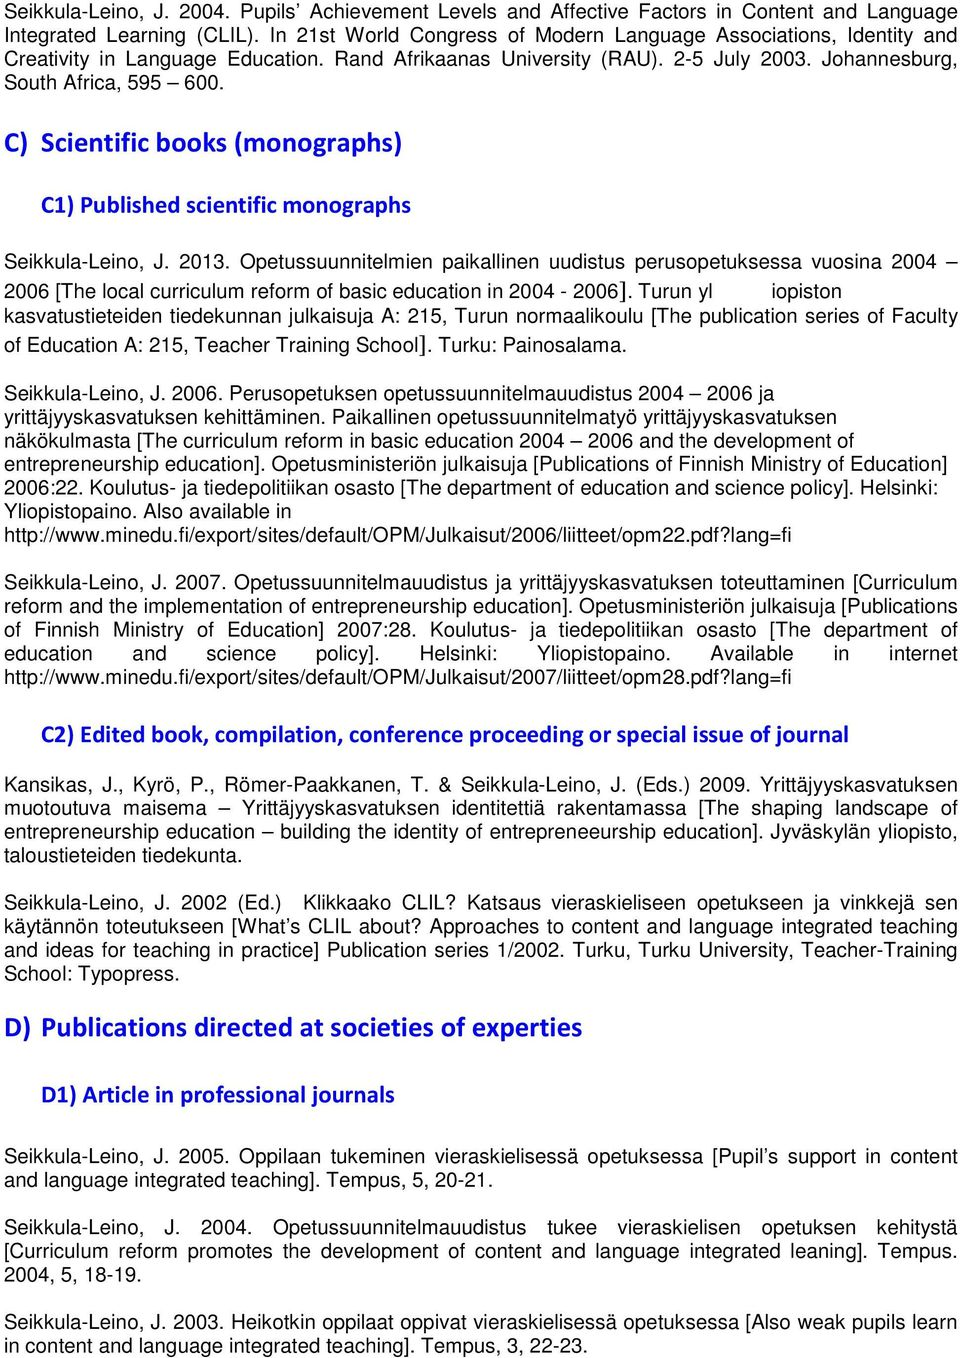 C) Scientific books (monographs) C1) Published scientific monographs Seikkula-Leino, J. 2013.